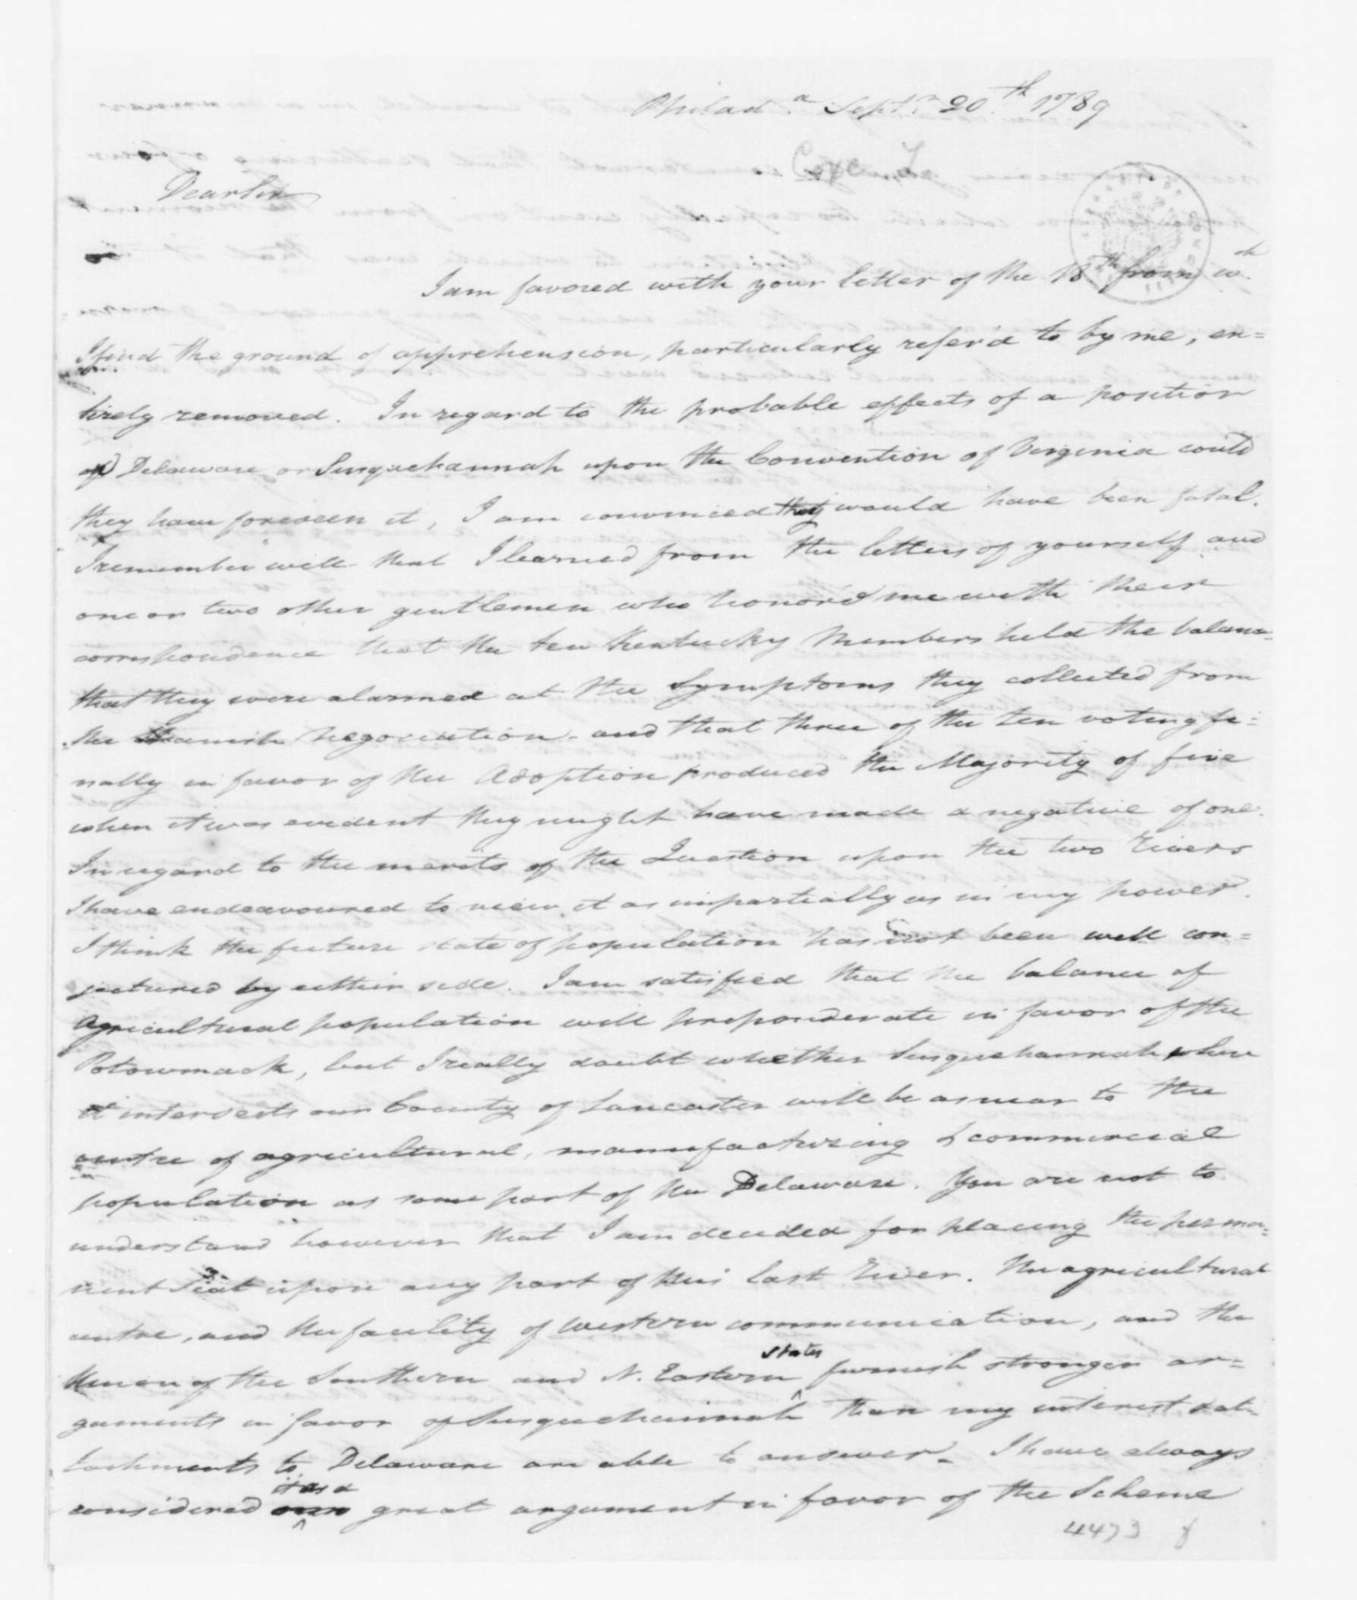 Tench Coxe to James Madison, September 18, 1789.